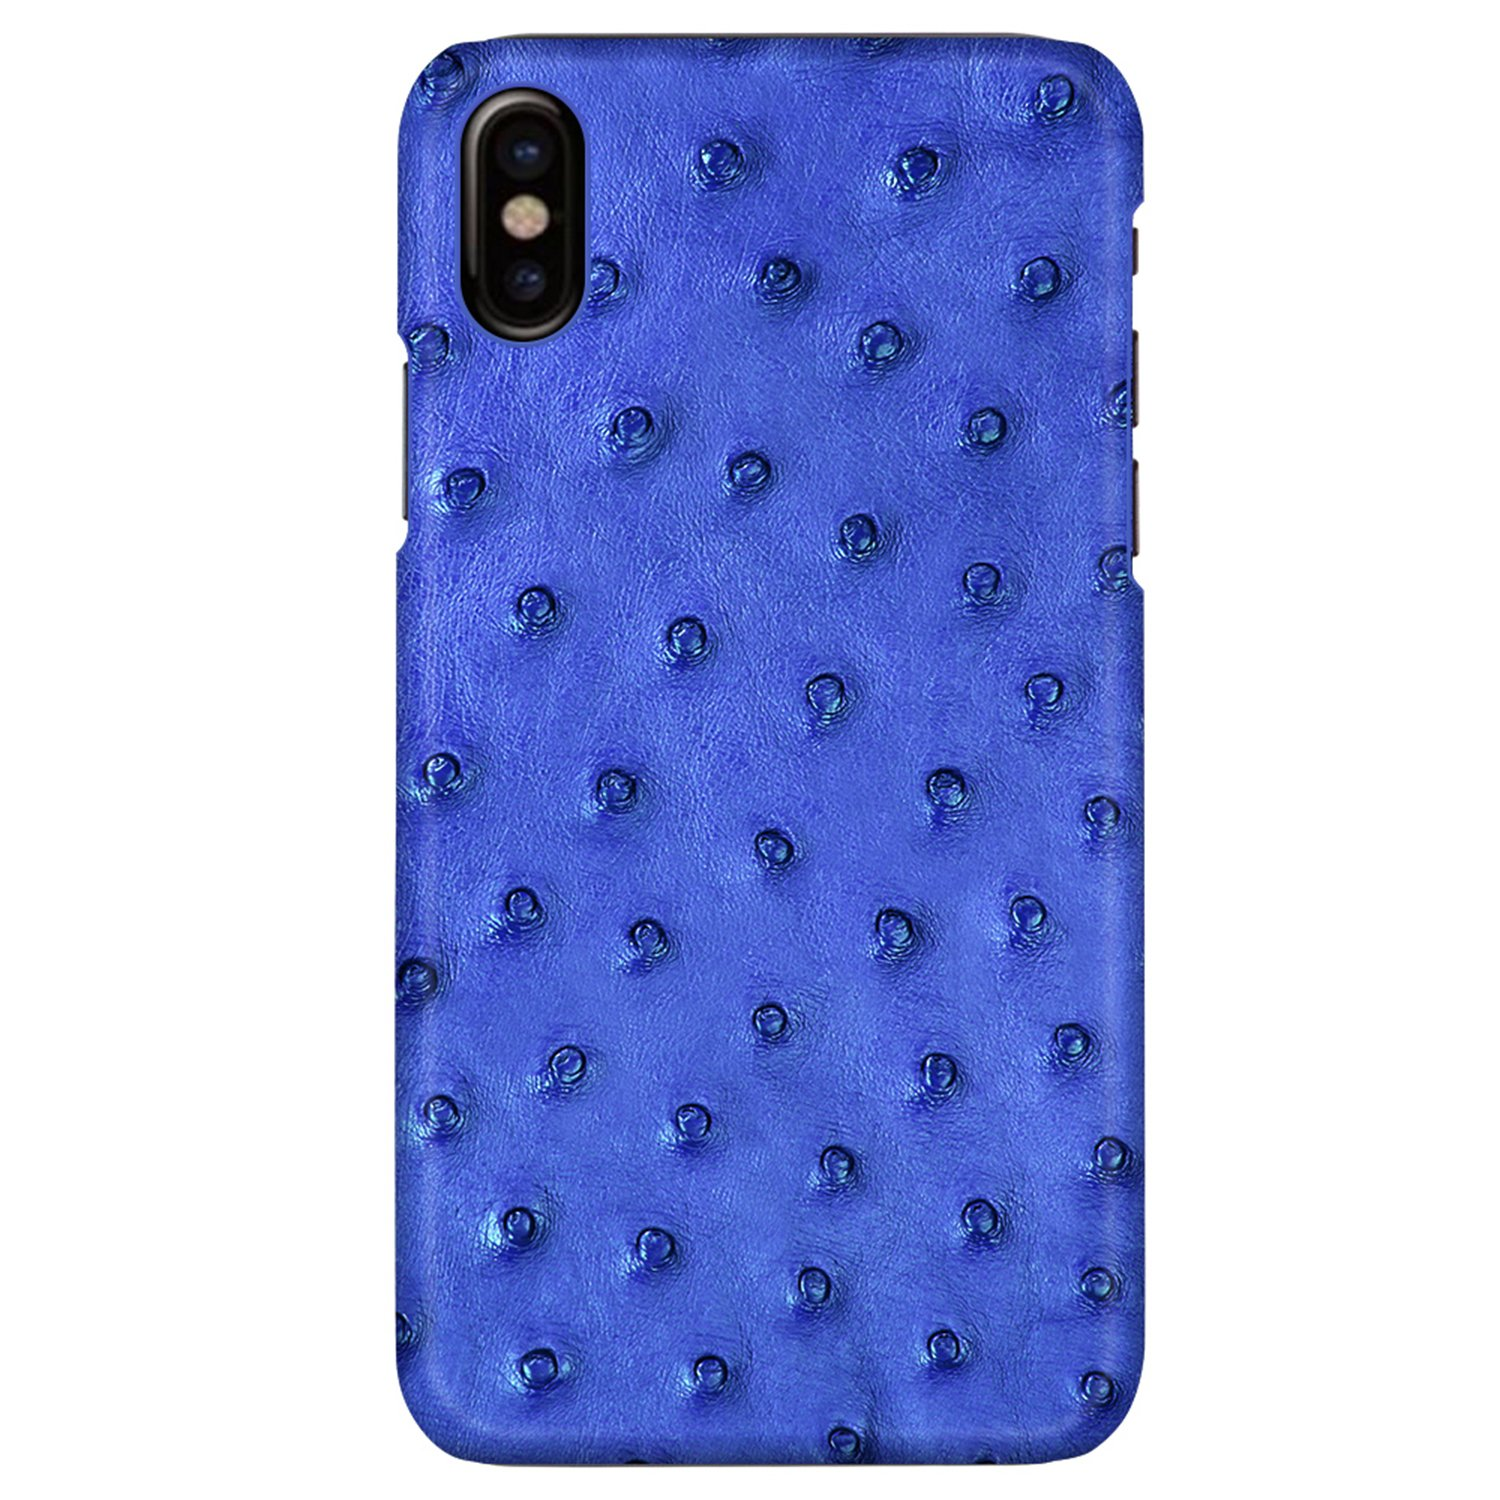 UU&T Luxury Case Classic Ostrich Leather Lightweight Hardshell Back Case for iPhone X 5.8 Inch (Blue)